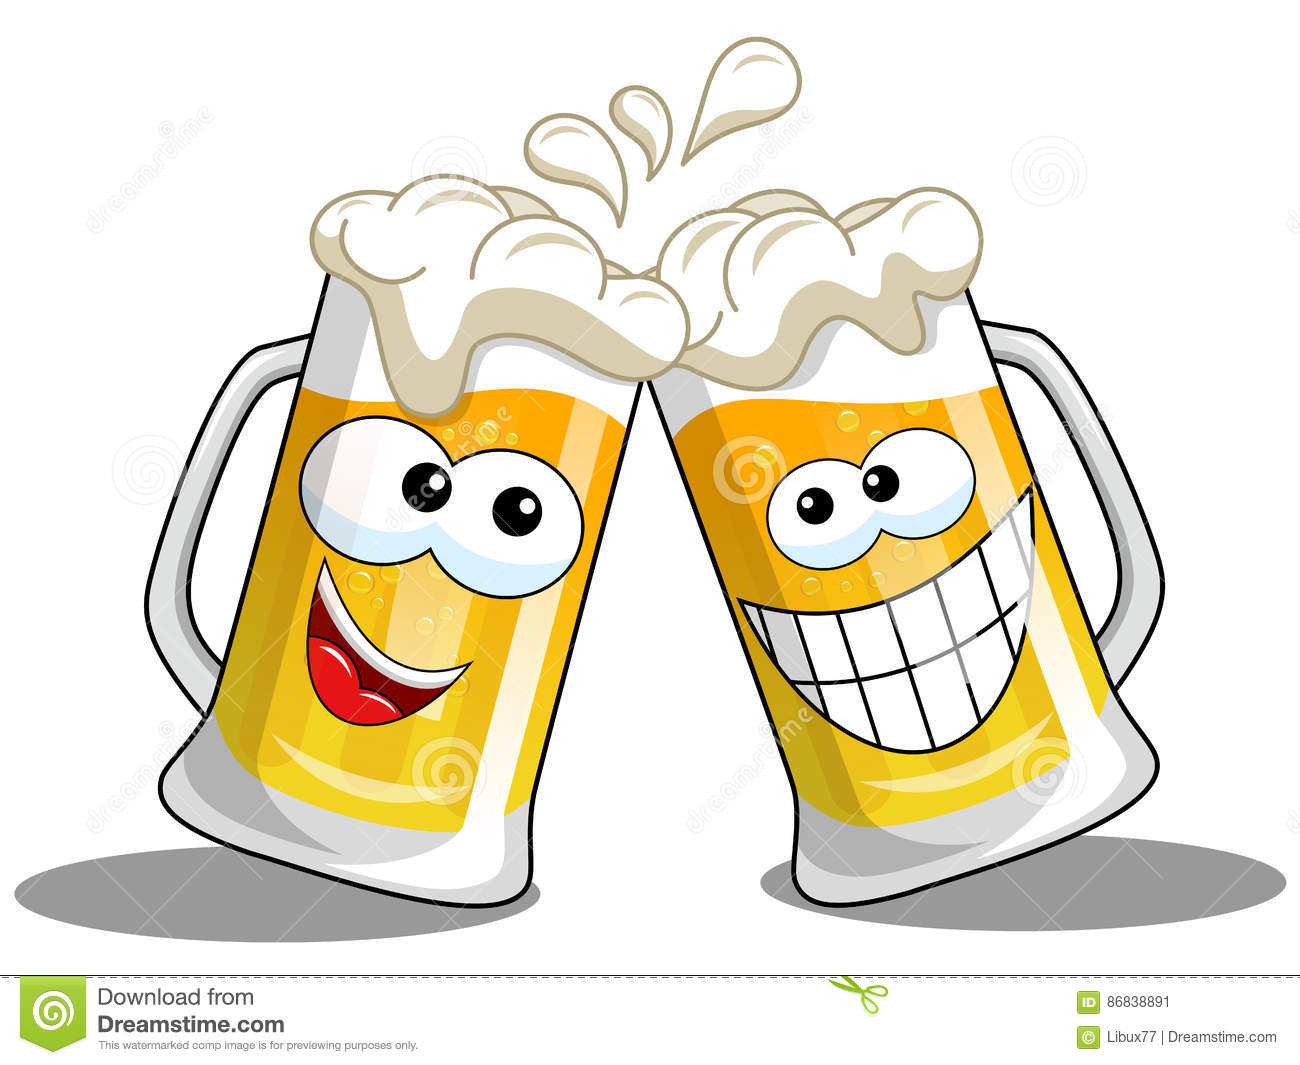 Cheers Cartoons, Illustrations & Vector Stock Images ...